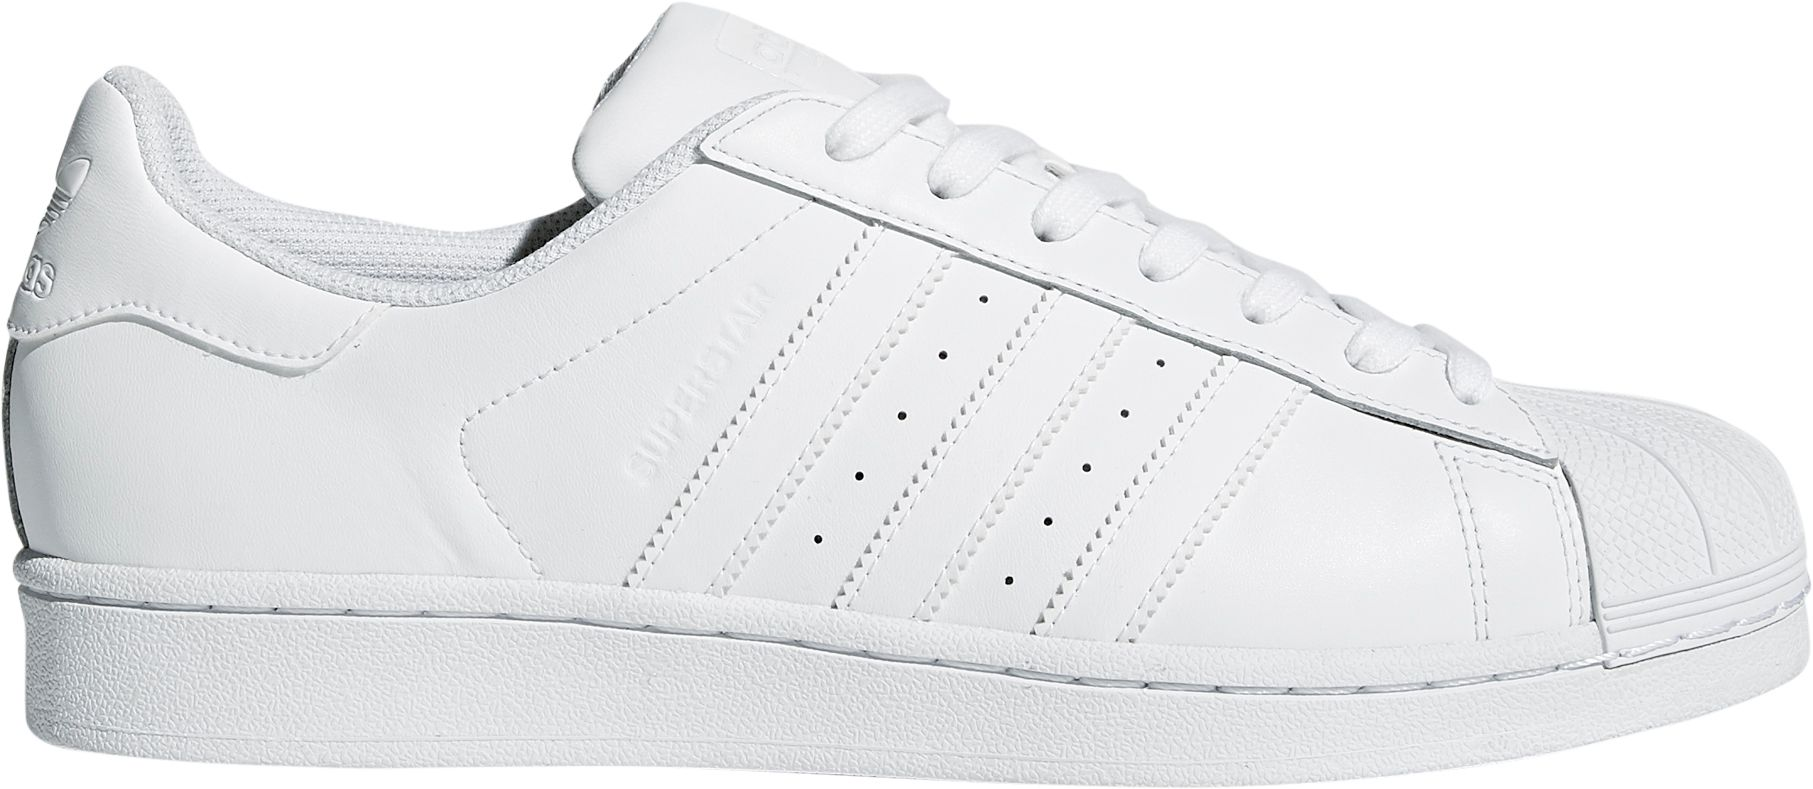 Cheap Adidas Superstar Vulc ADV TX collegiate navy/running white gum